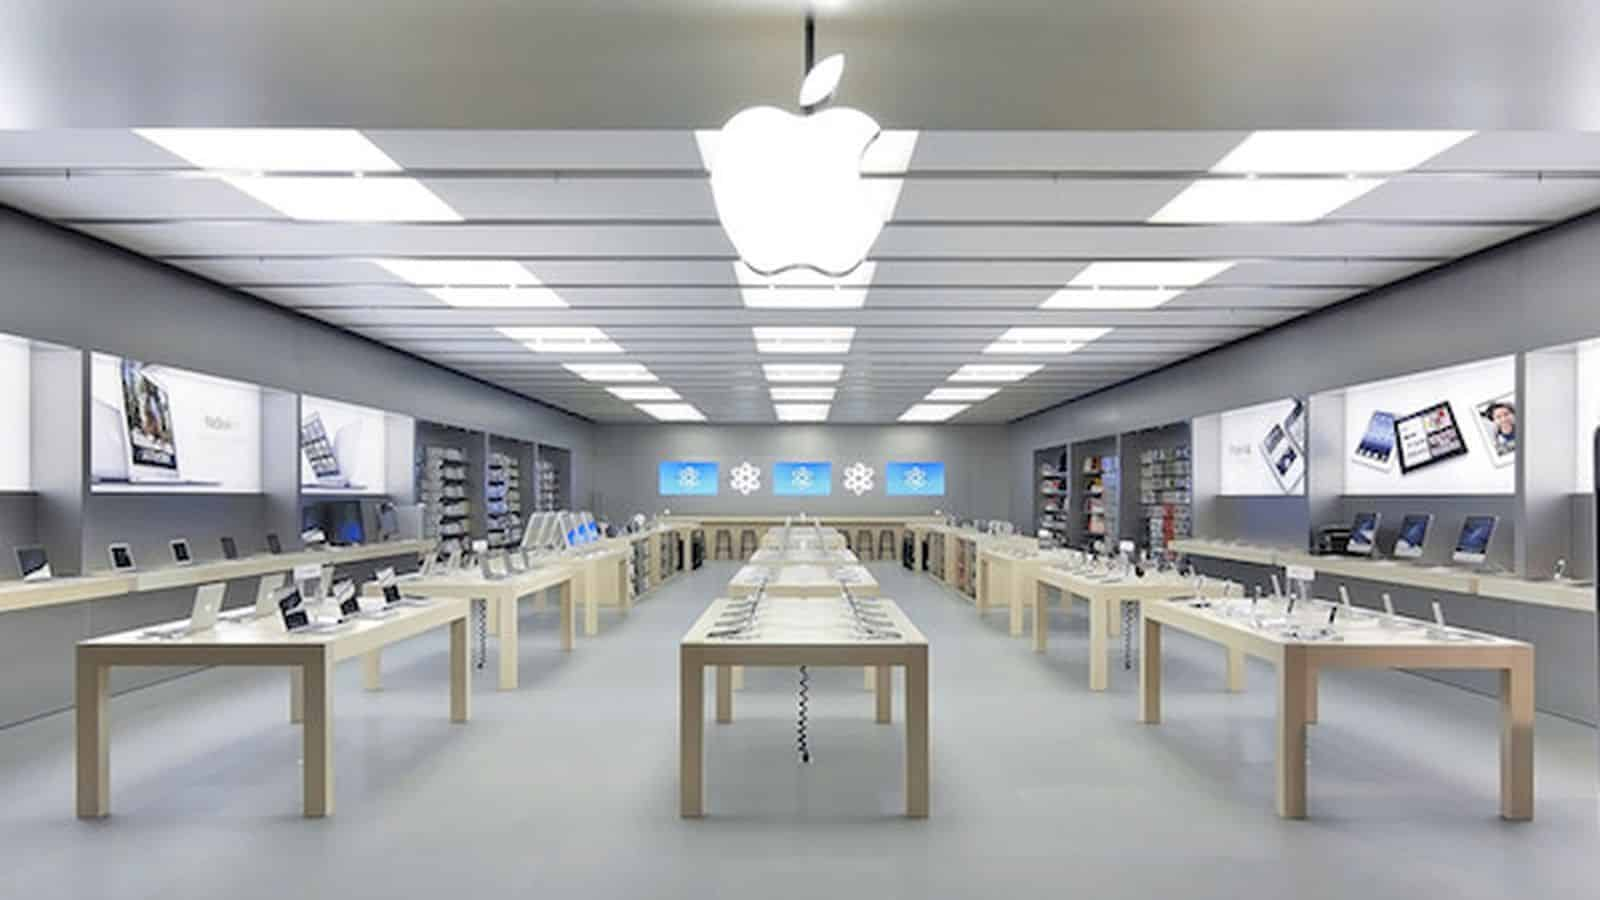 Esplode la batteria di un iPhone nell'Apple Store svizzero